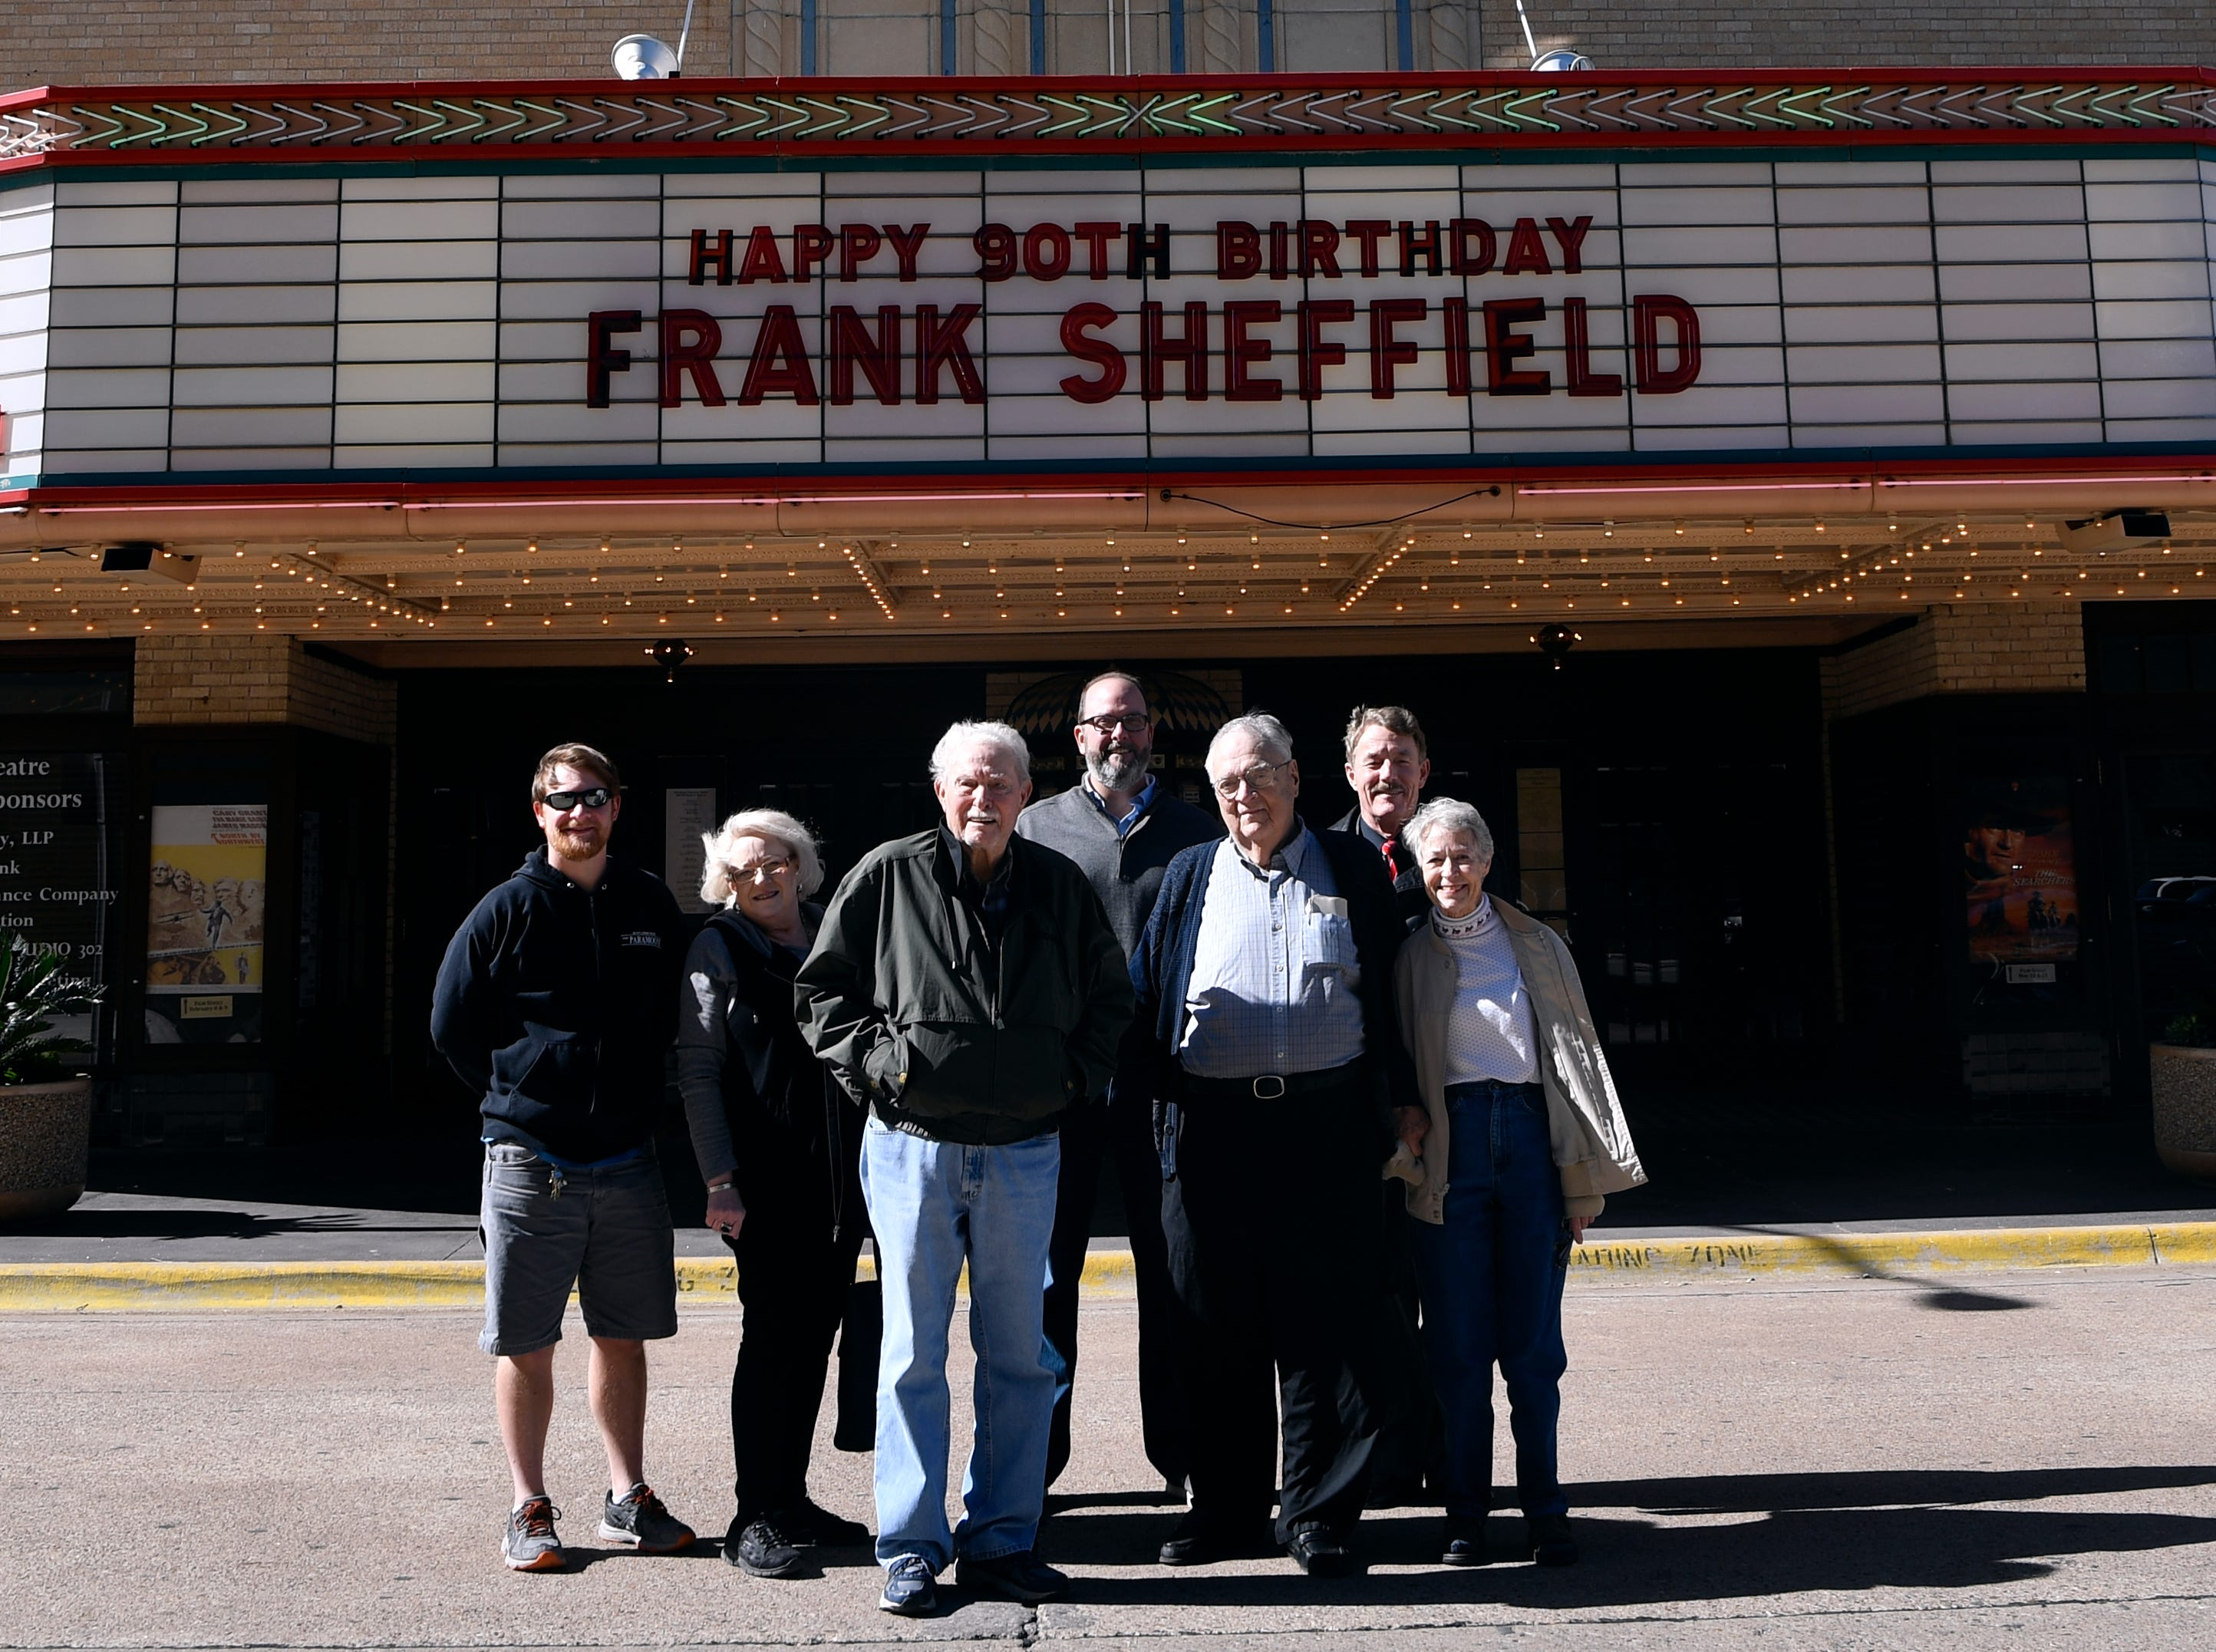 Frank Sheffield celebrates his 90th birthday with friends at the Paramount Theatre. From left: Grayson Allred, Brenda Krick, Frank Sheffield, George Levesque, Robert Holladay, Chris Carnohan and Jamie Villegas.